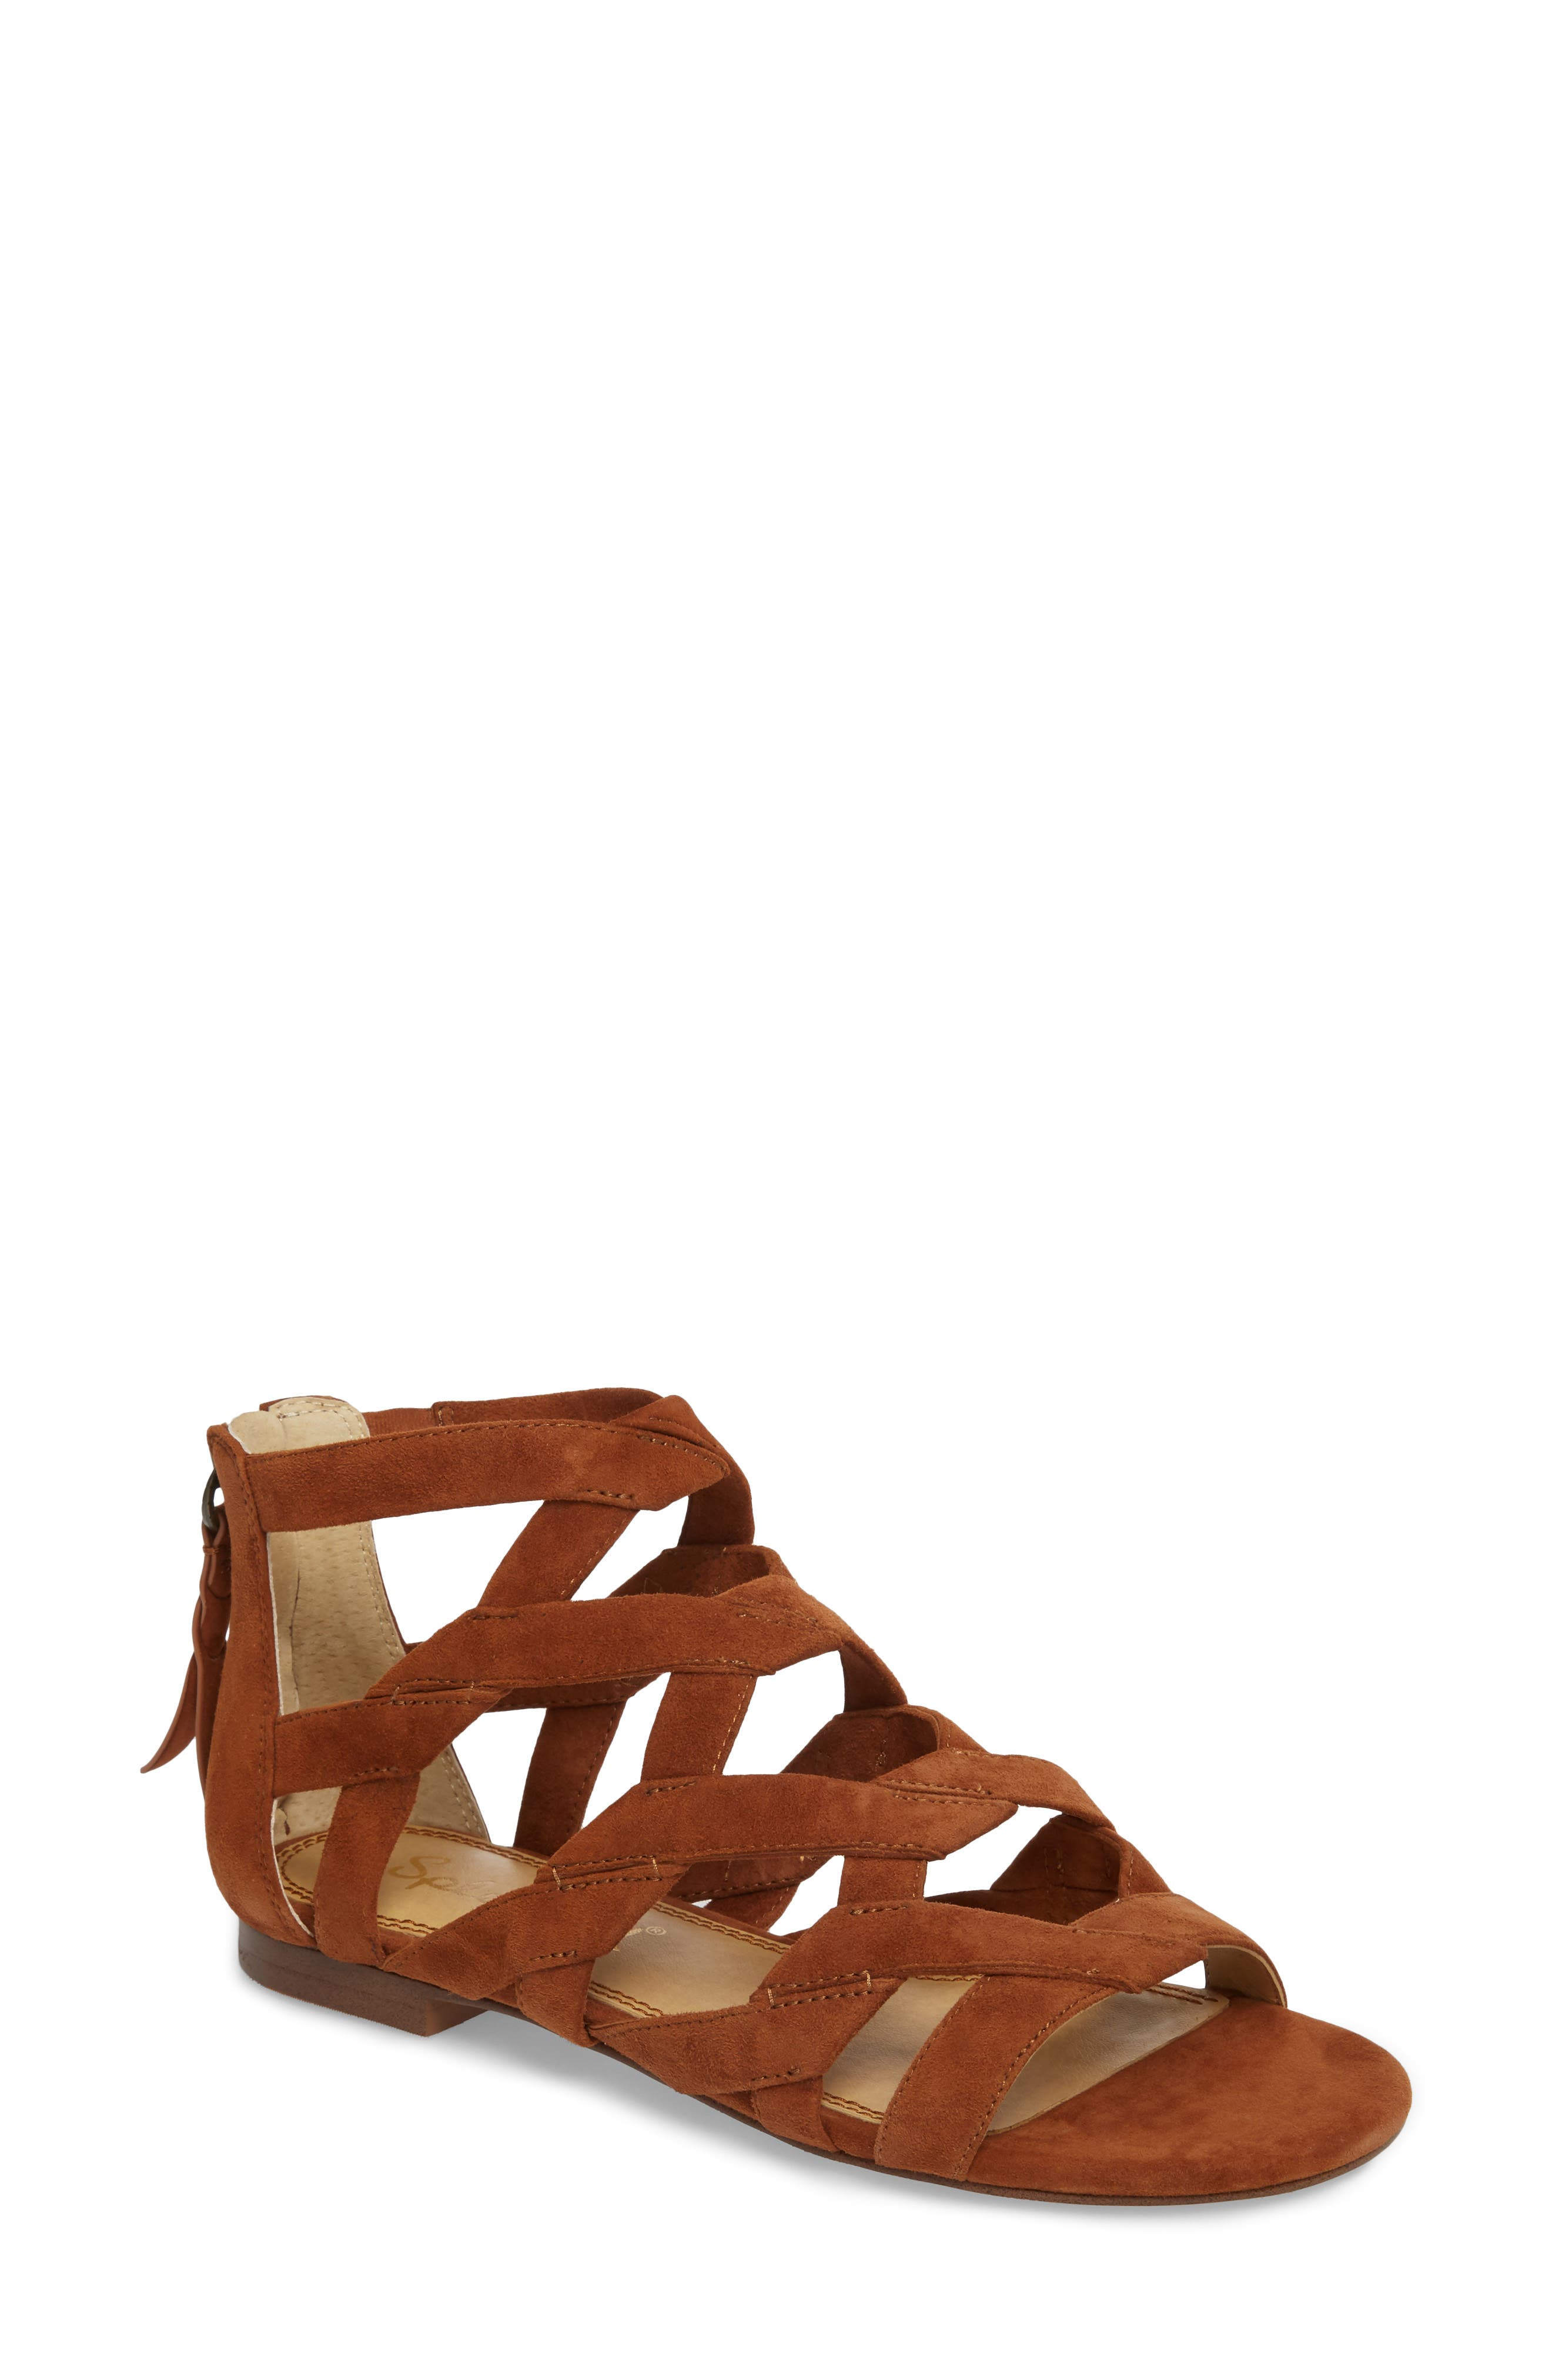 Barrett Mid Top Cage Sandal,                             Main thumbnail 1, color,                             Caramel Suede